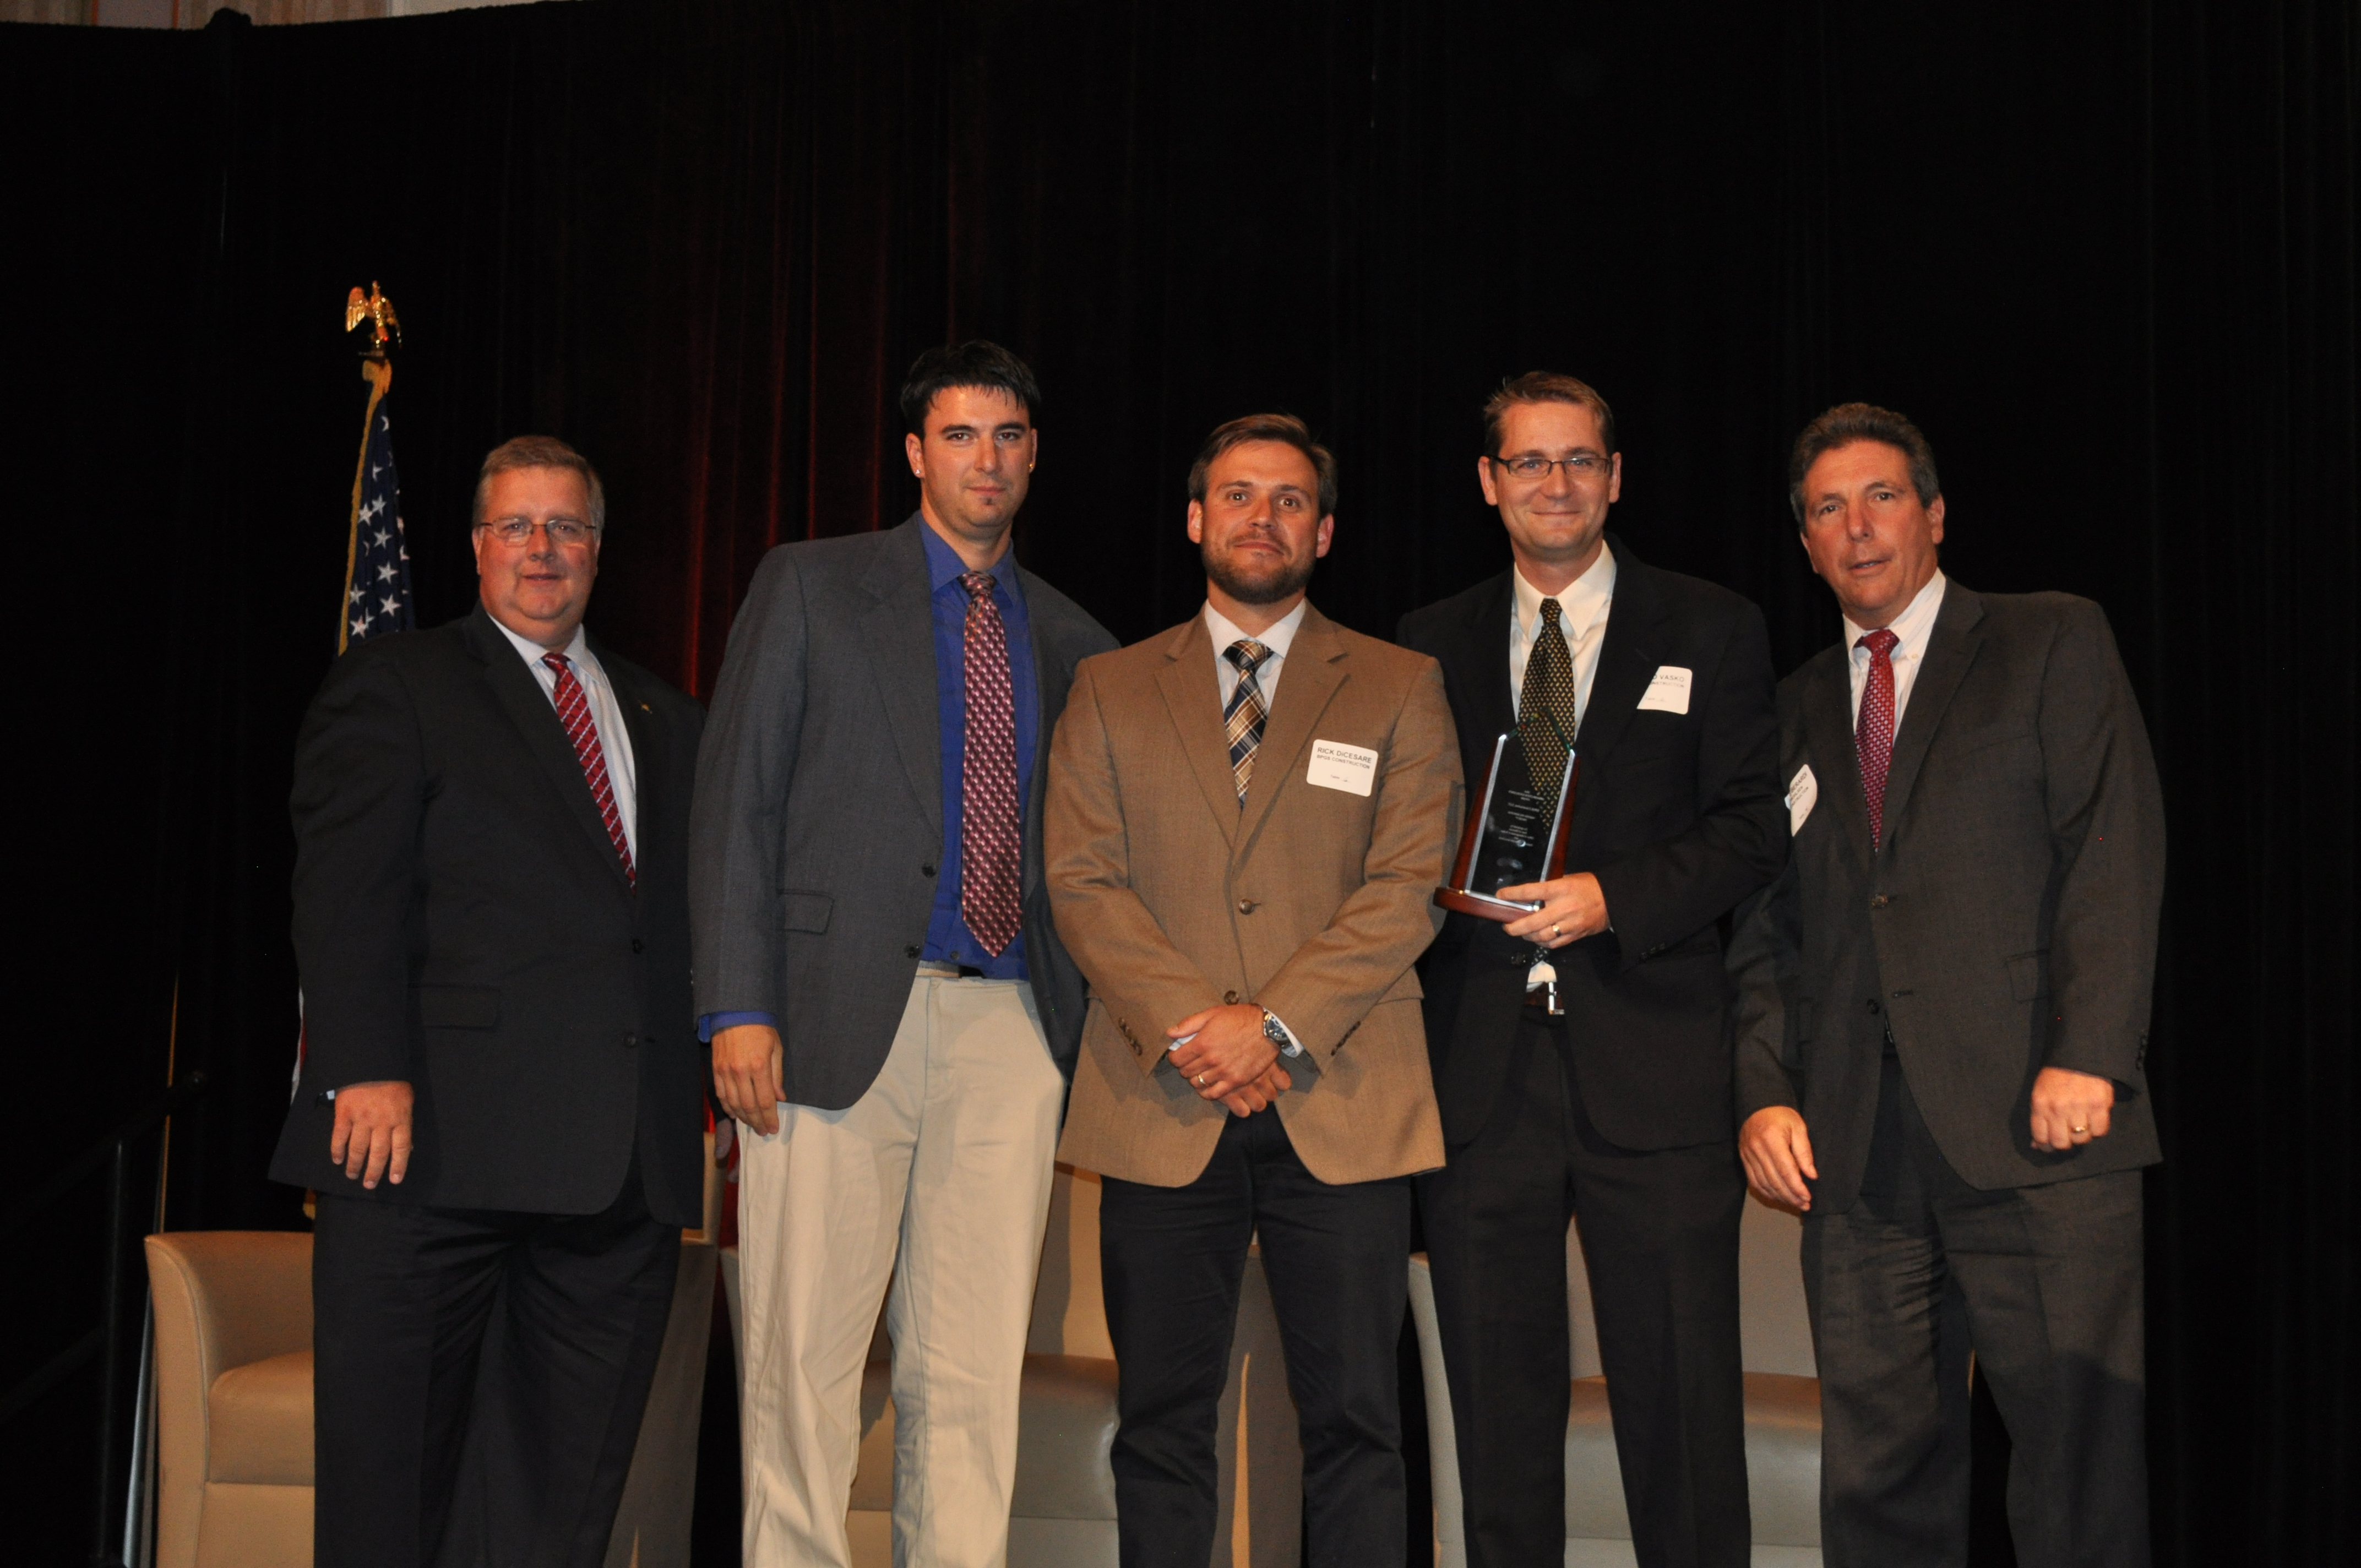 2014 CONSTRUCTION EXCELLENCE AWARD